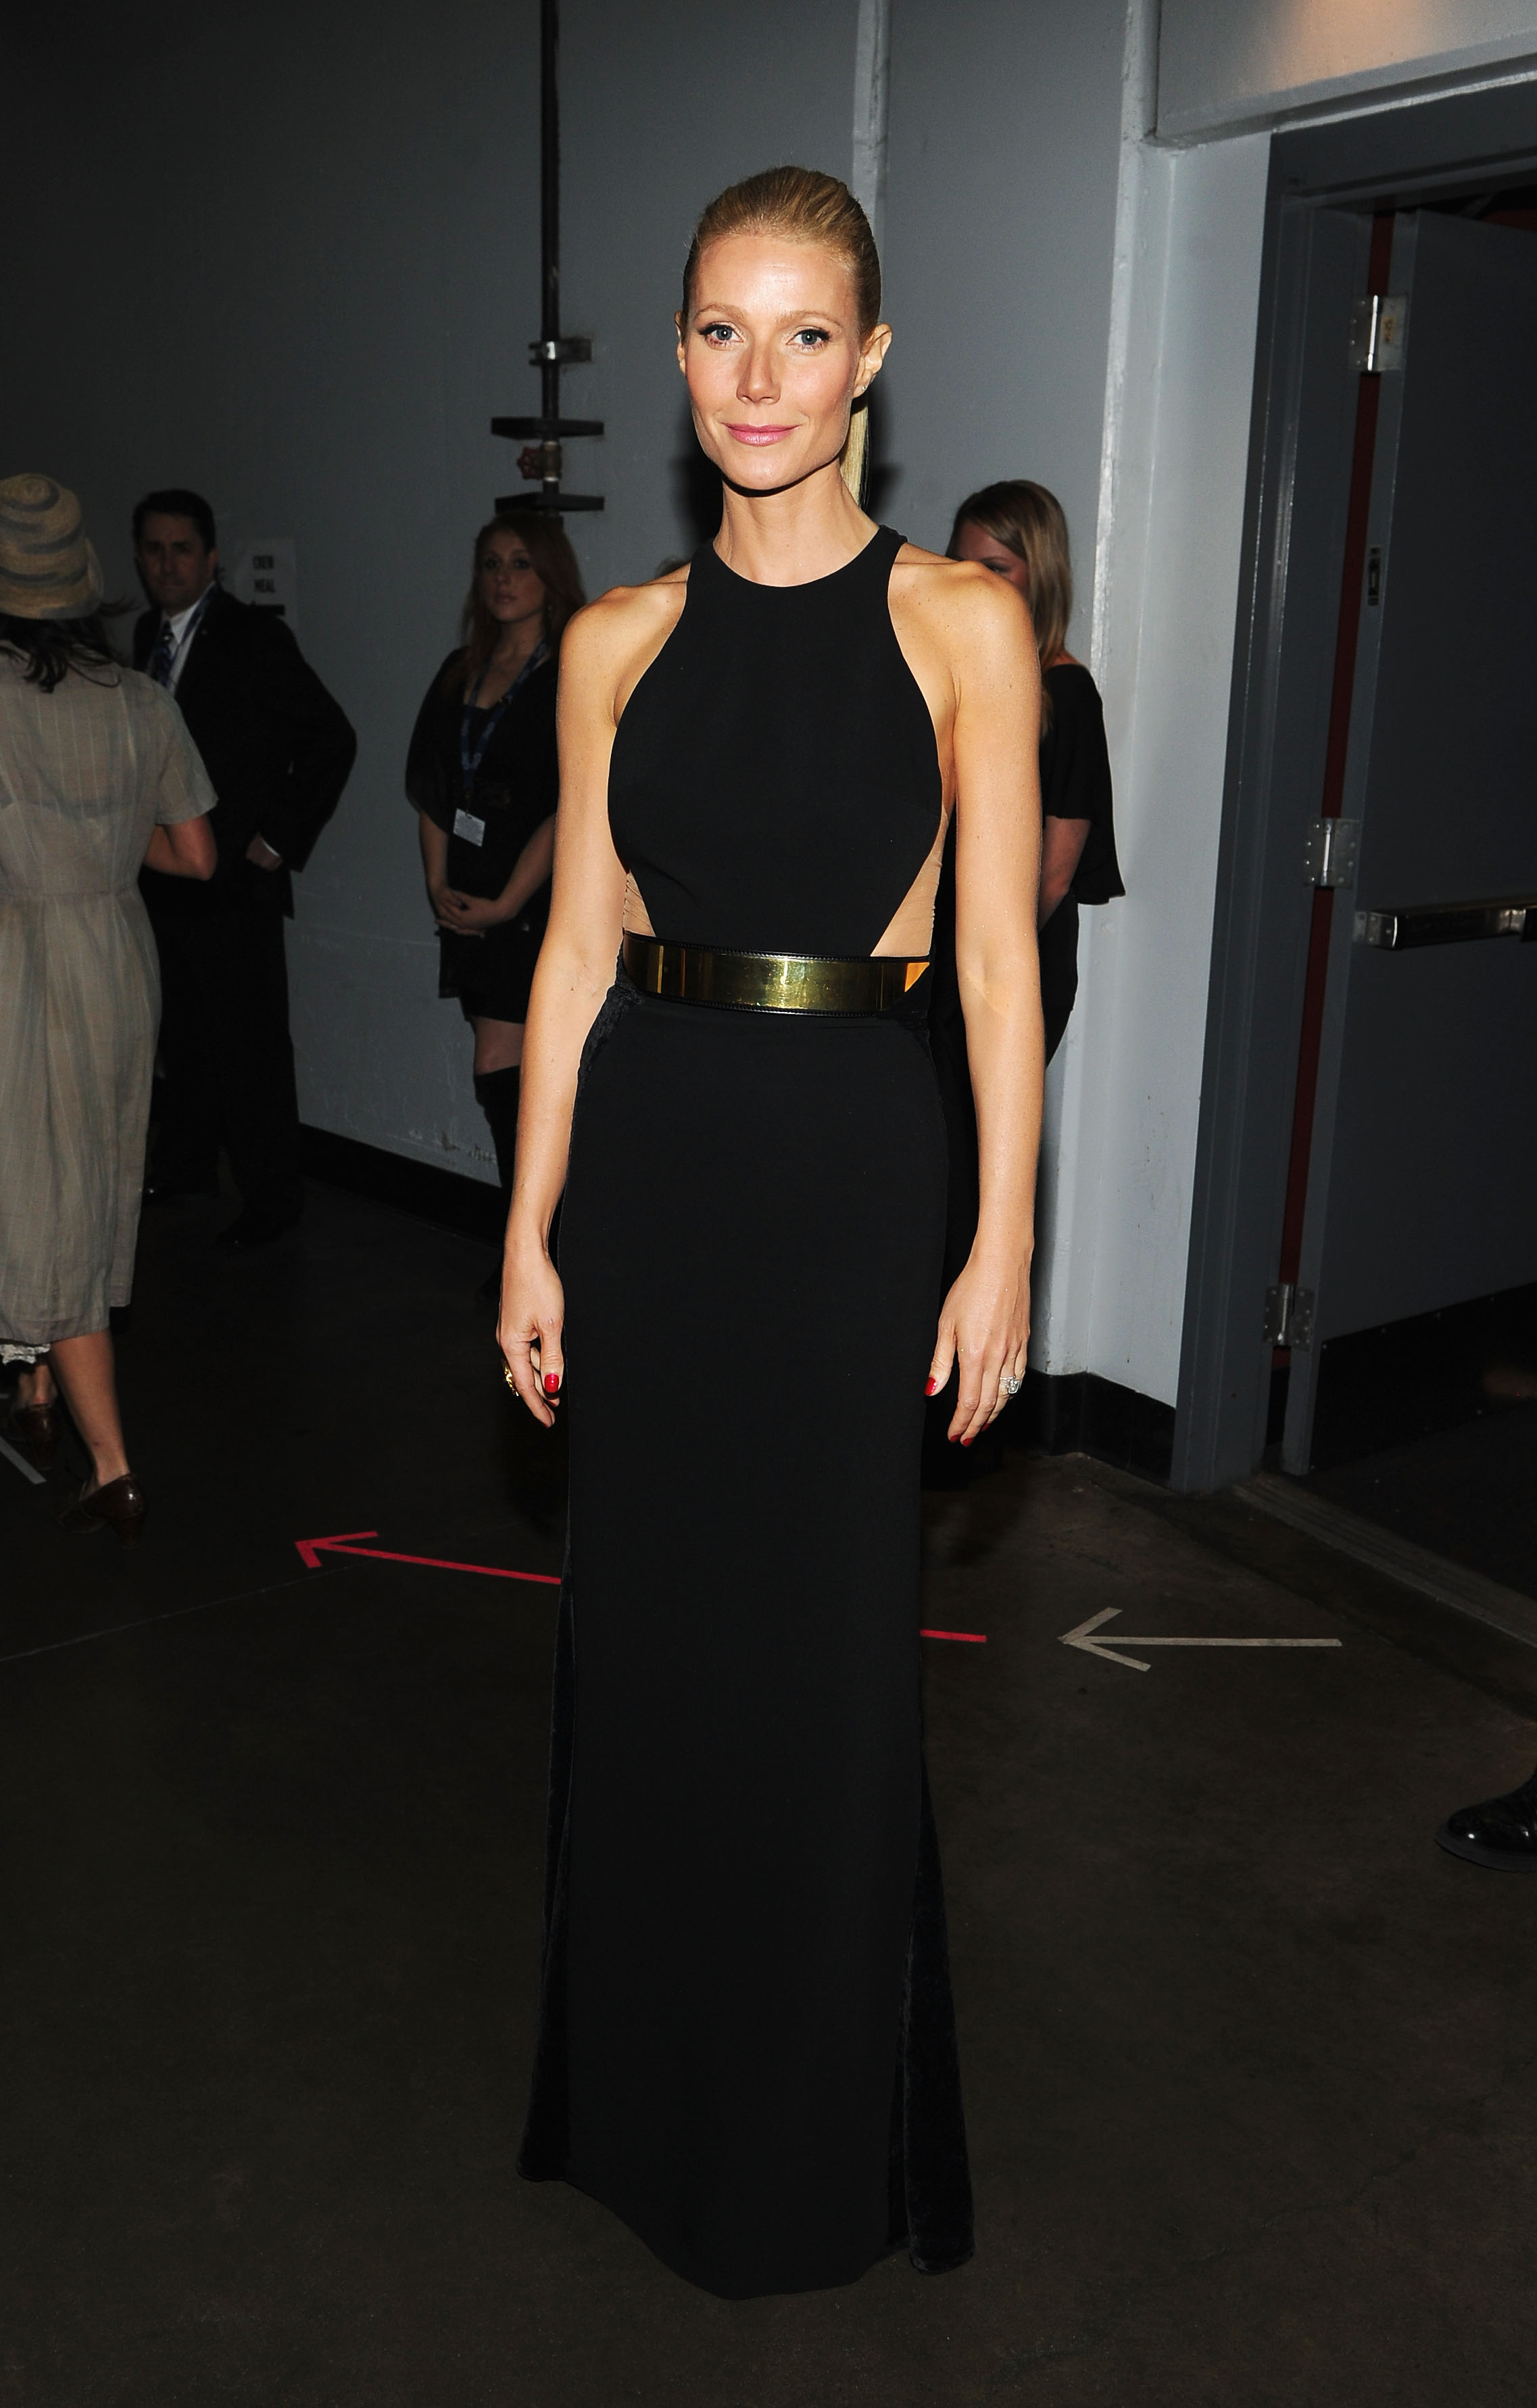 Gwyneth Paltrow posed for a photo backstage.